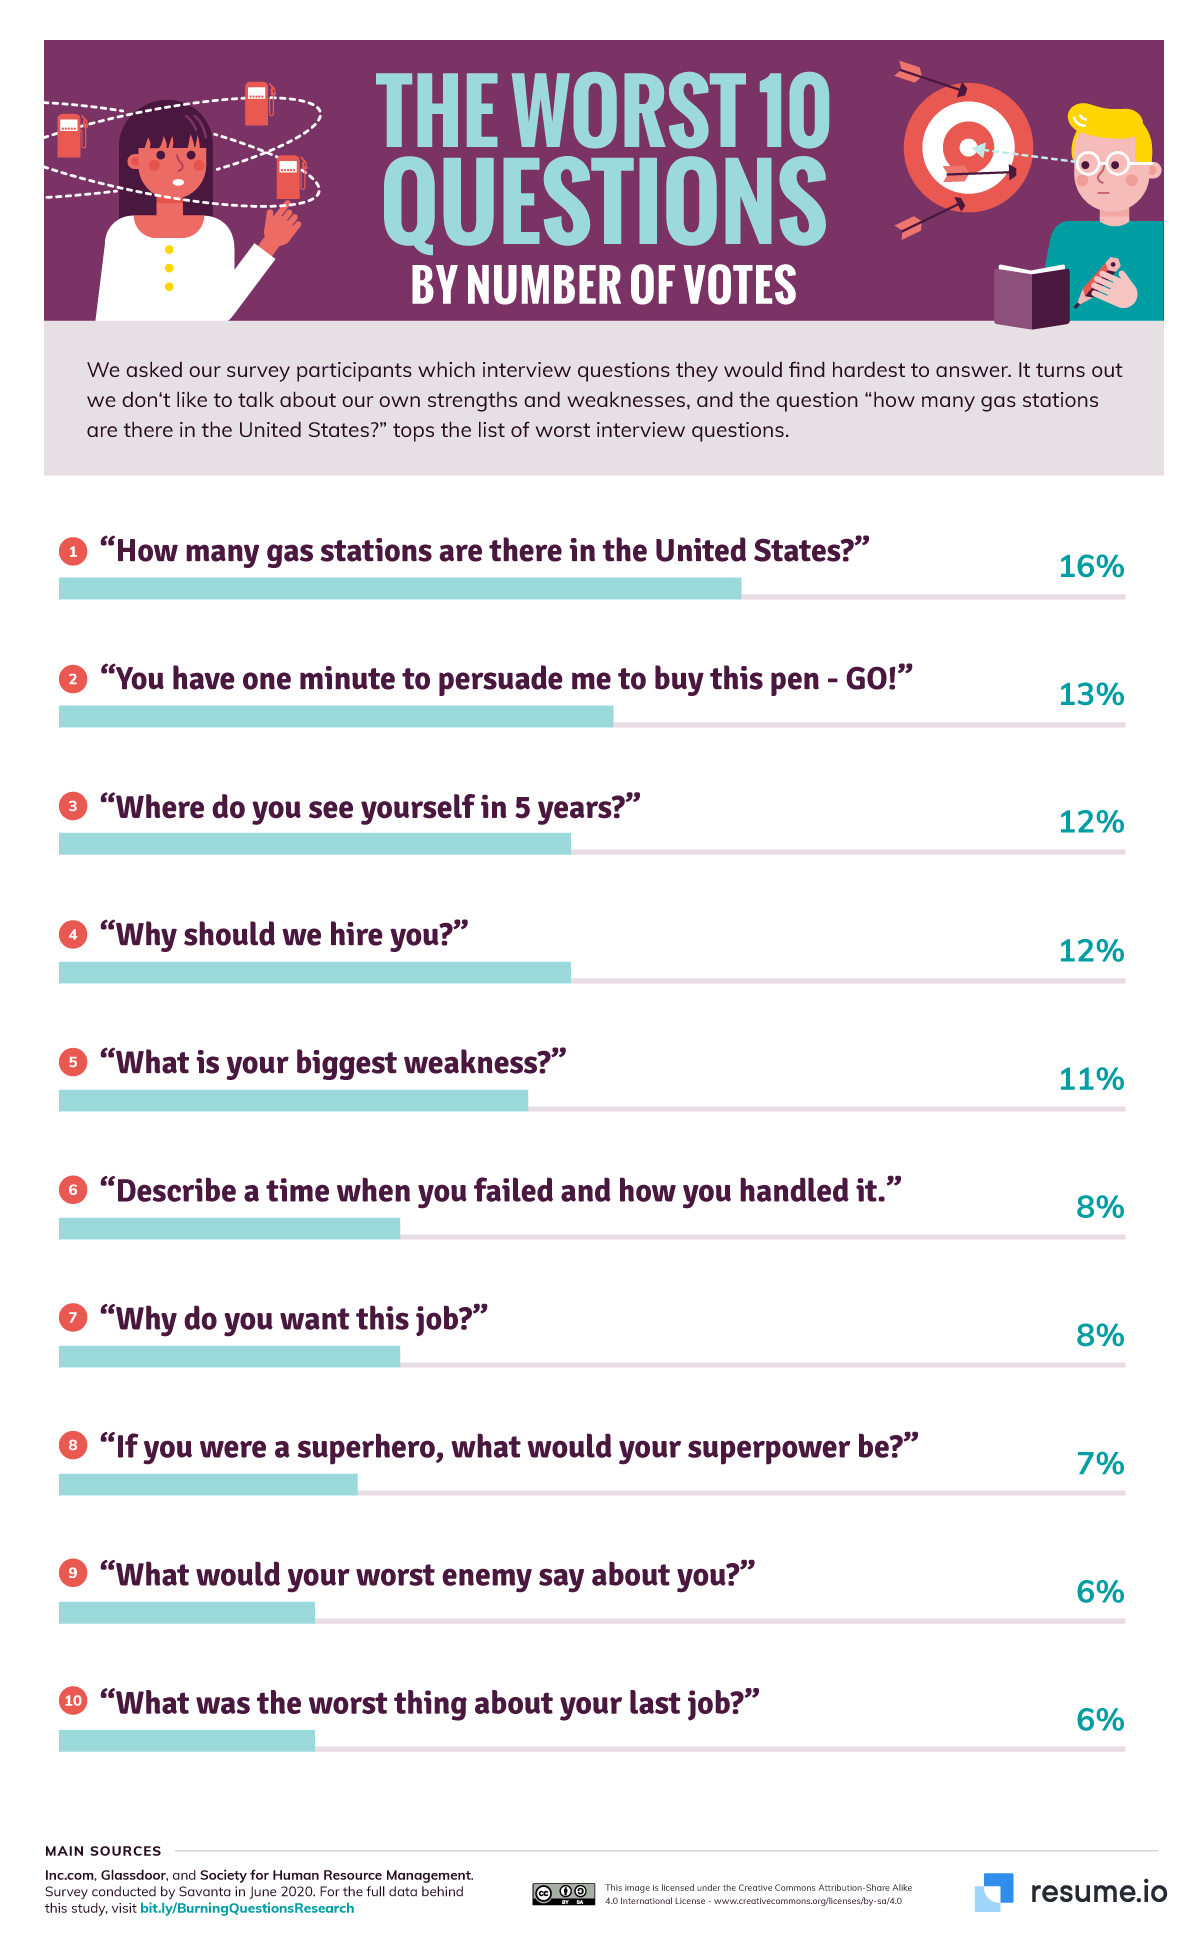 The worst job interview questions, revealed - infographic